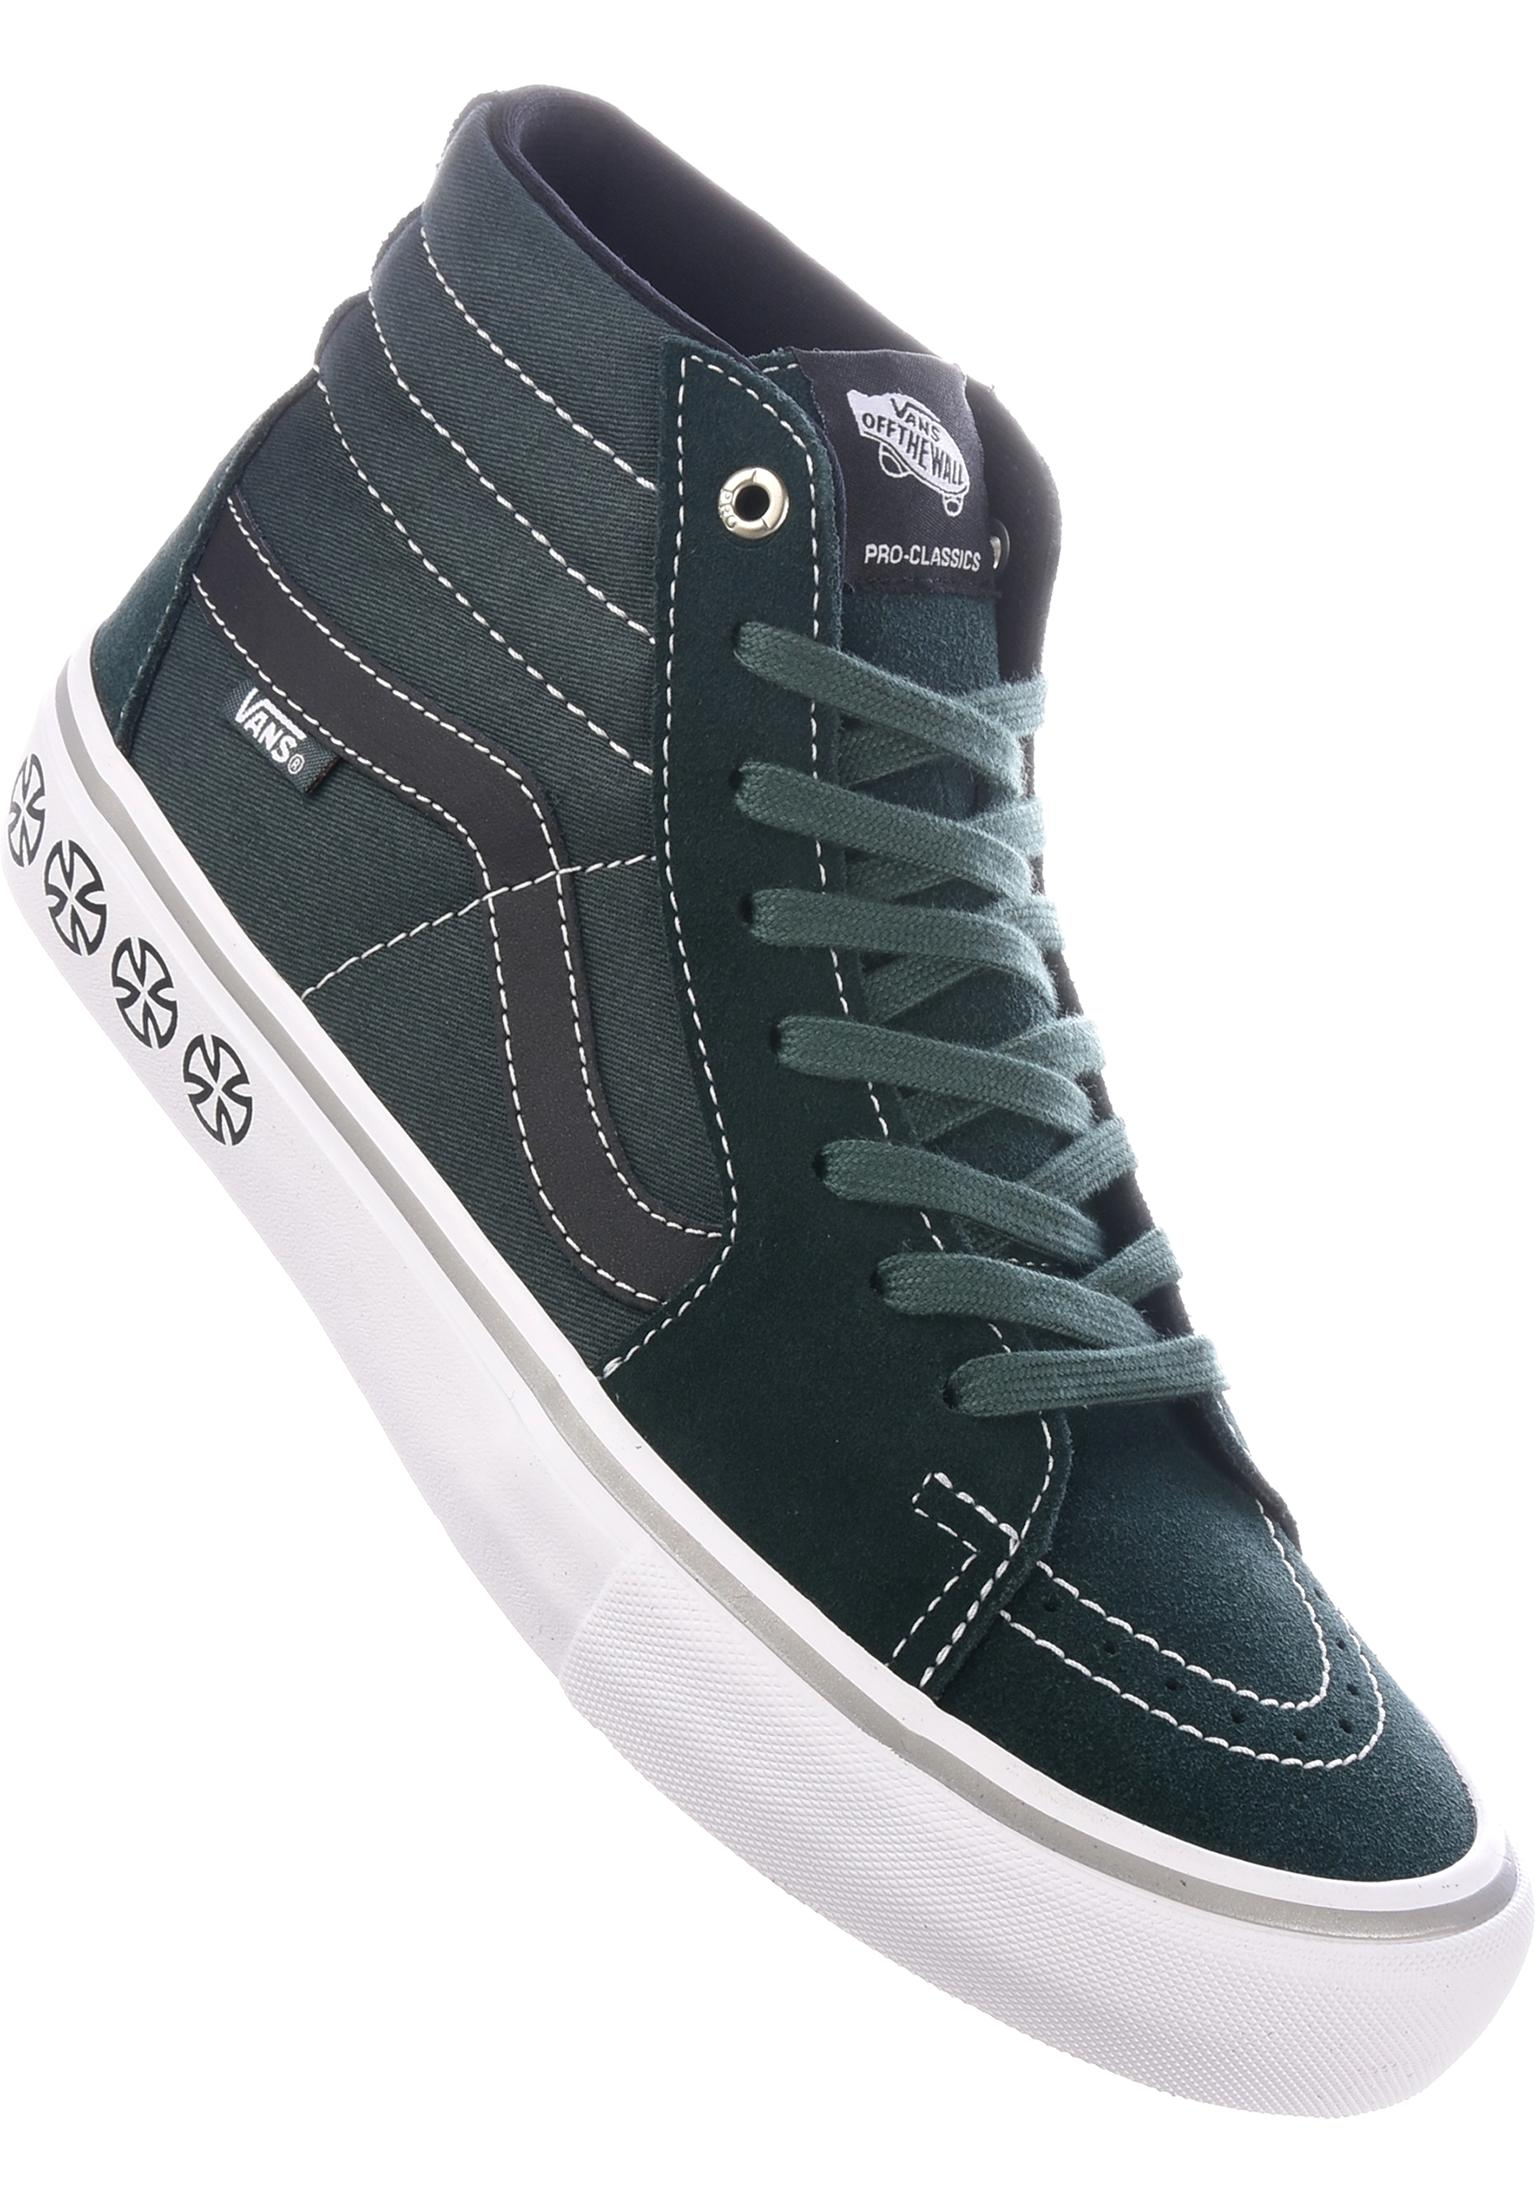 Titus_Muenchen_vans-schuhe-jungs-sk8-hi-pro-x-independent-independent-spruce-0604459.jpg